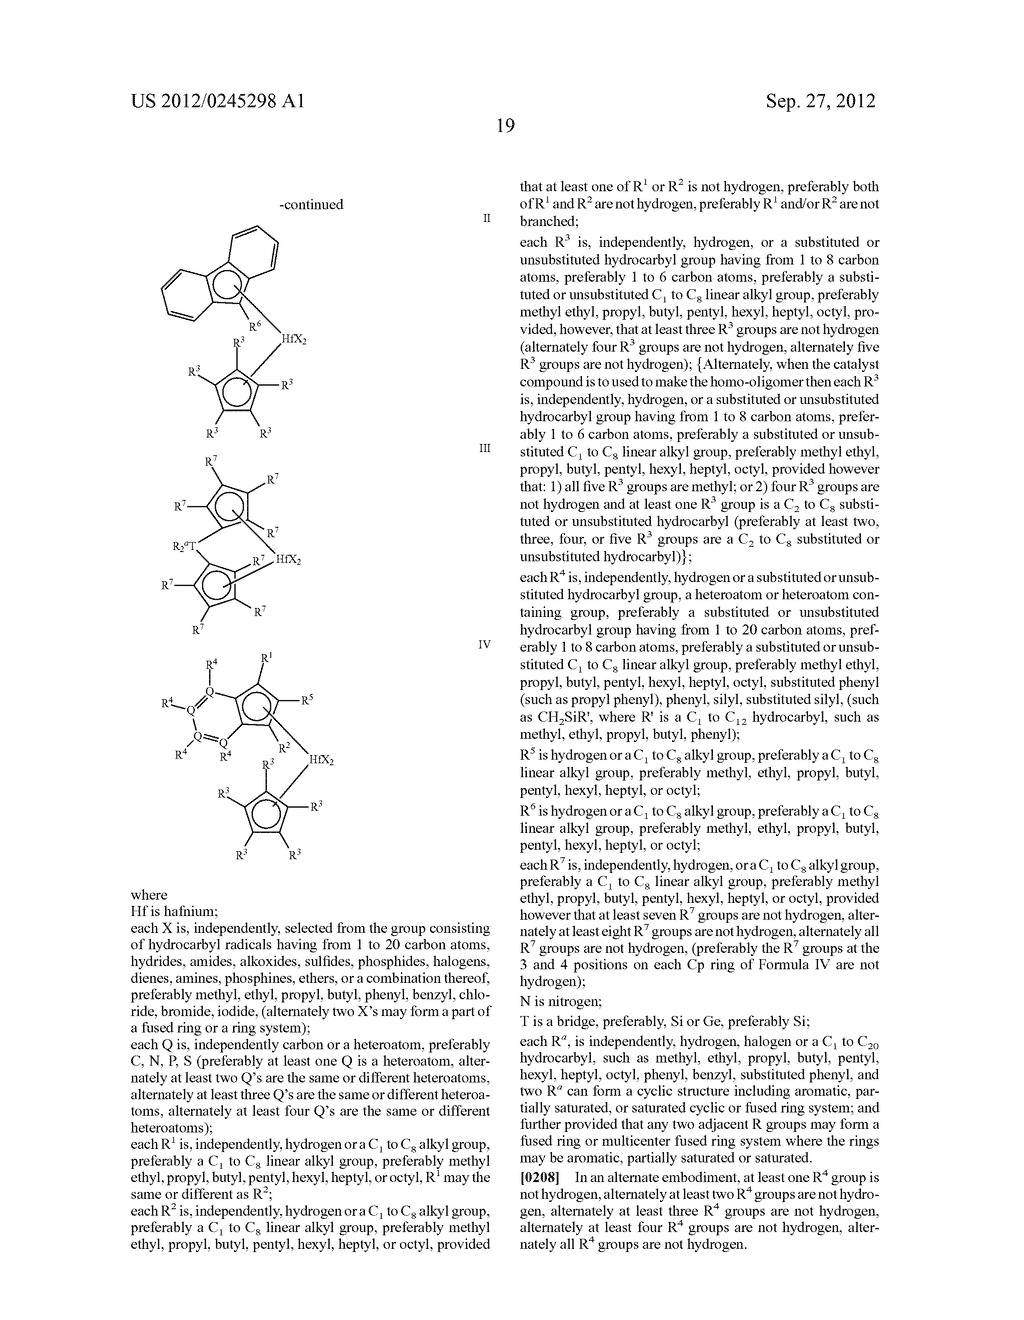 Amphiphilic Block Polymers Prepared by Alkene Metathesis - diagram, schematic, and image 20